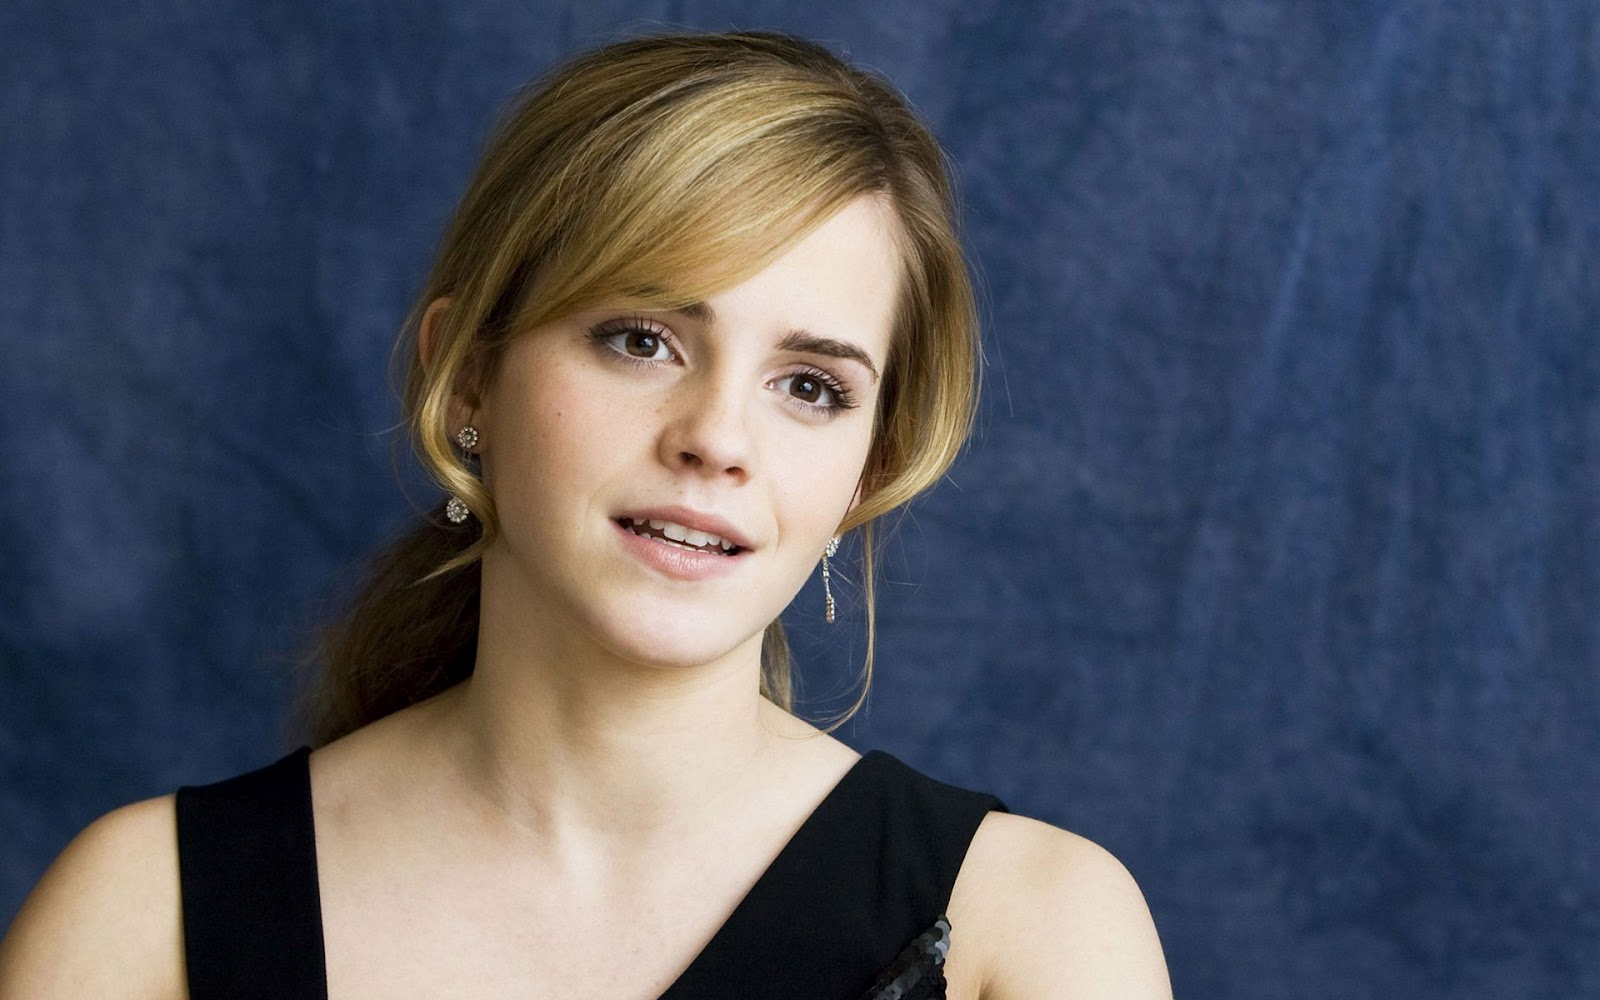 Discussion on this topic: Queenie Rosson, emma-watson-born-1990-born-in-france/